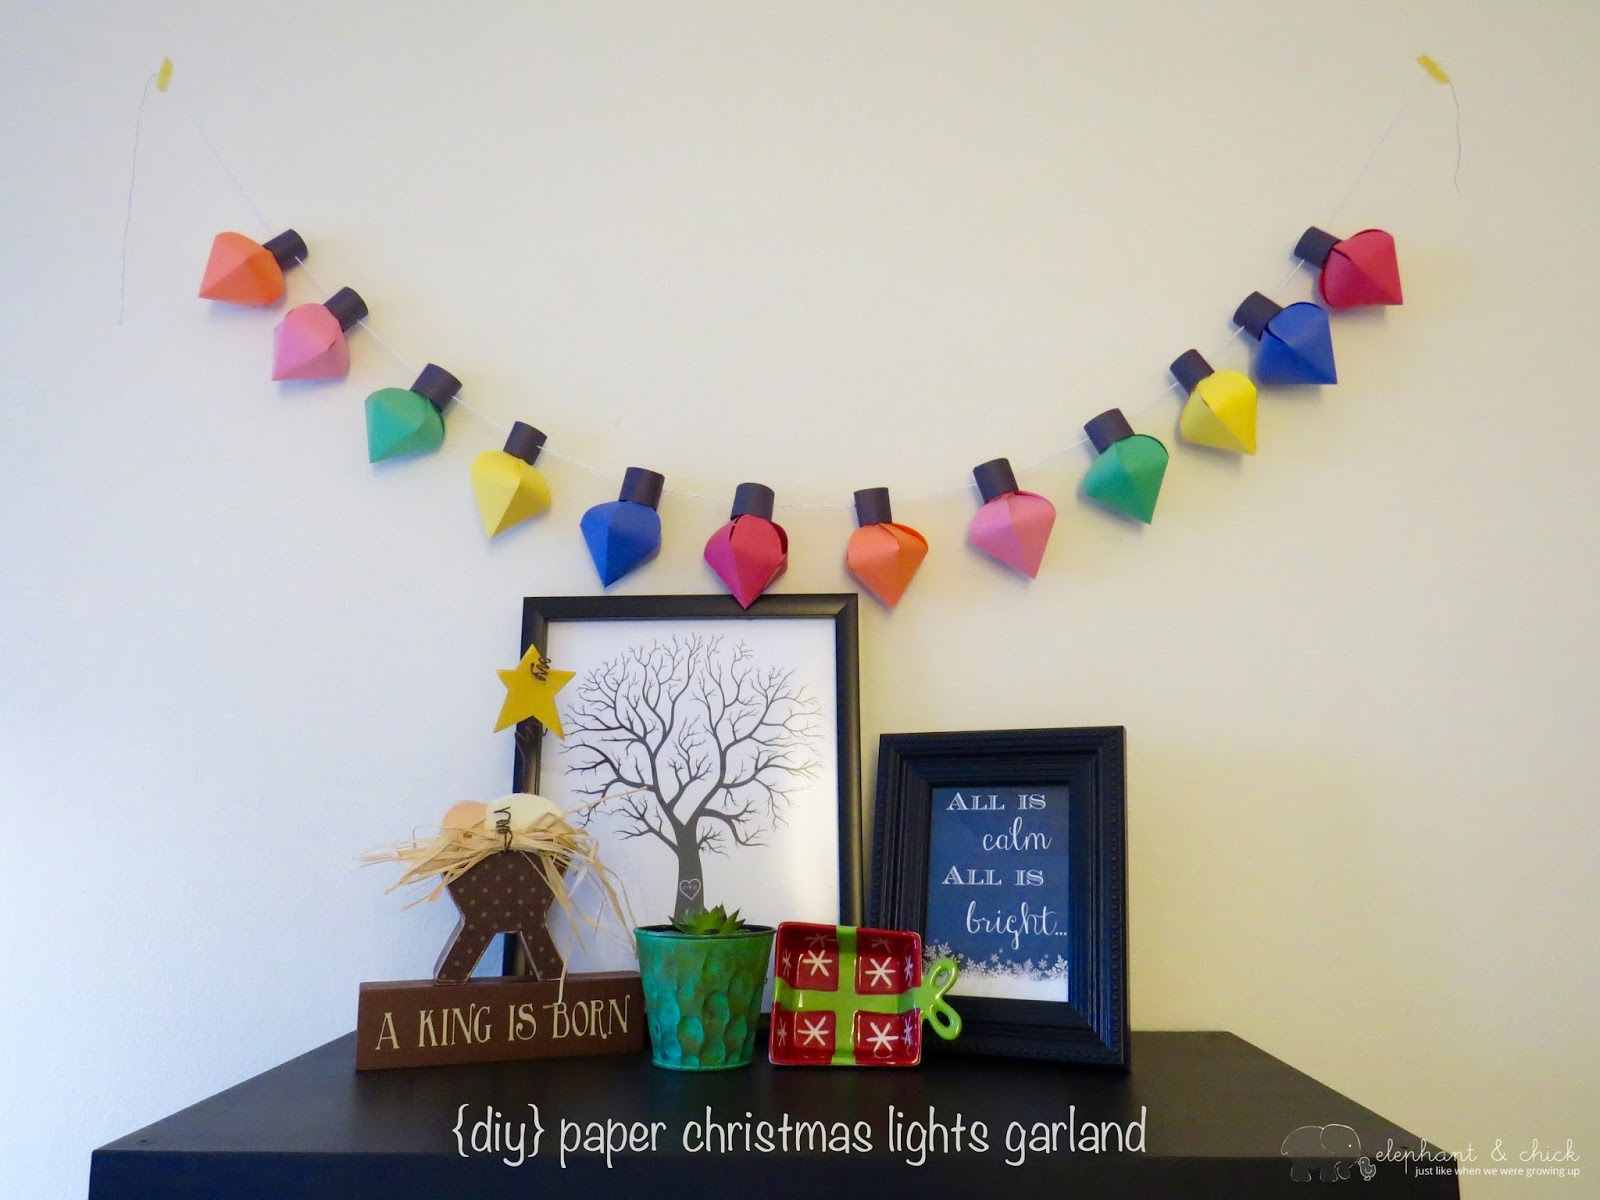 How to make a christmas decoration out of paper - Once I Set My Mind To It It Was Actually Fairly Simple To Put Together The First Few Lights Took A Little While To Put Together But Soon I Was A